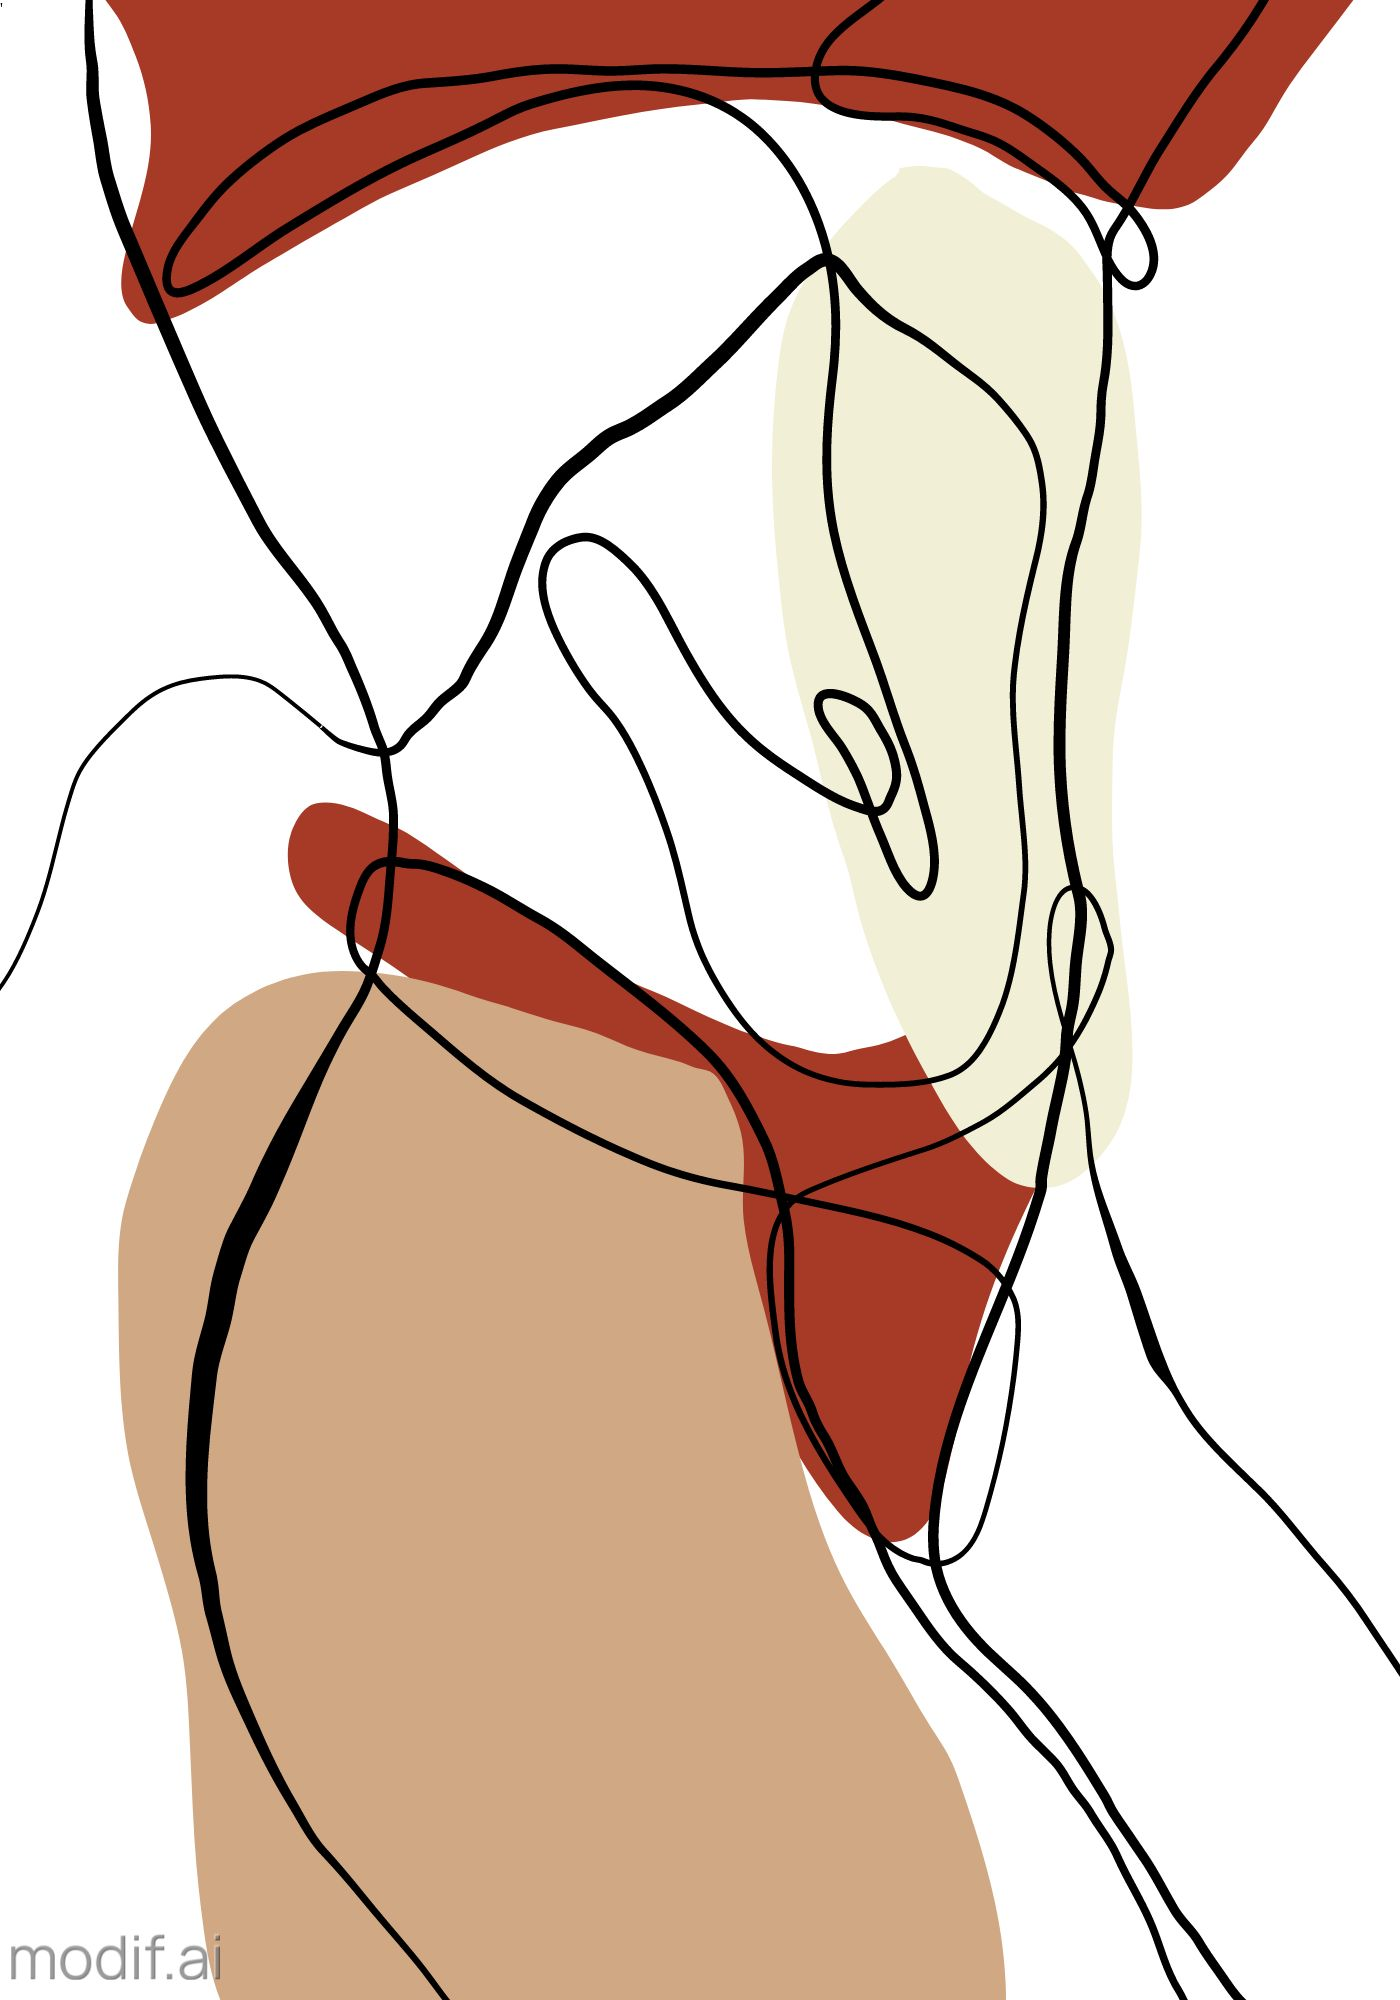 Female Body One Line Art Poster Template